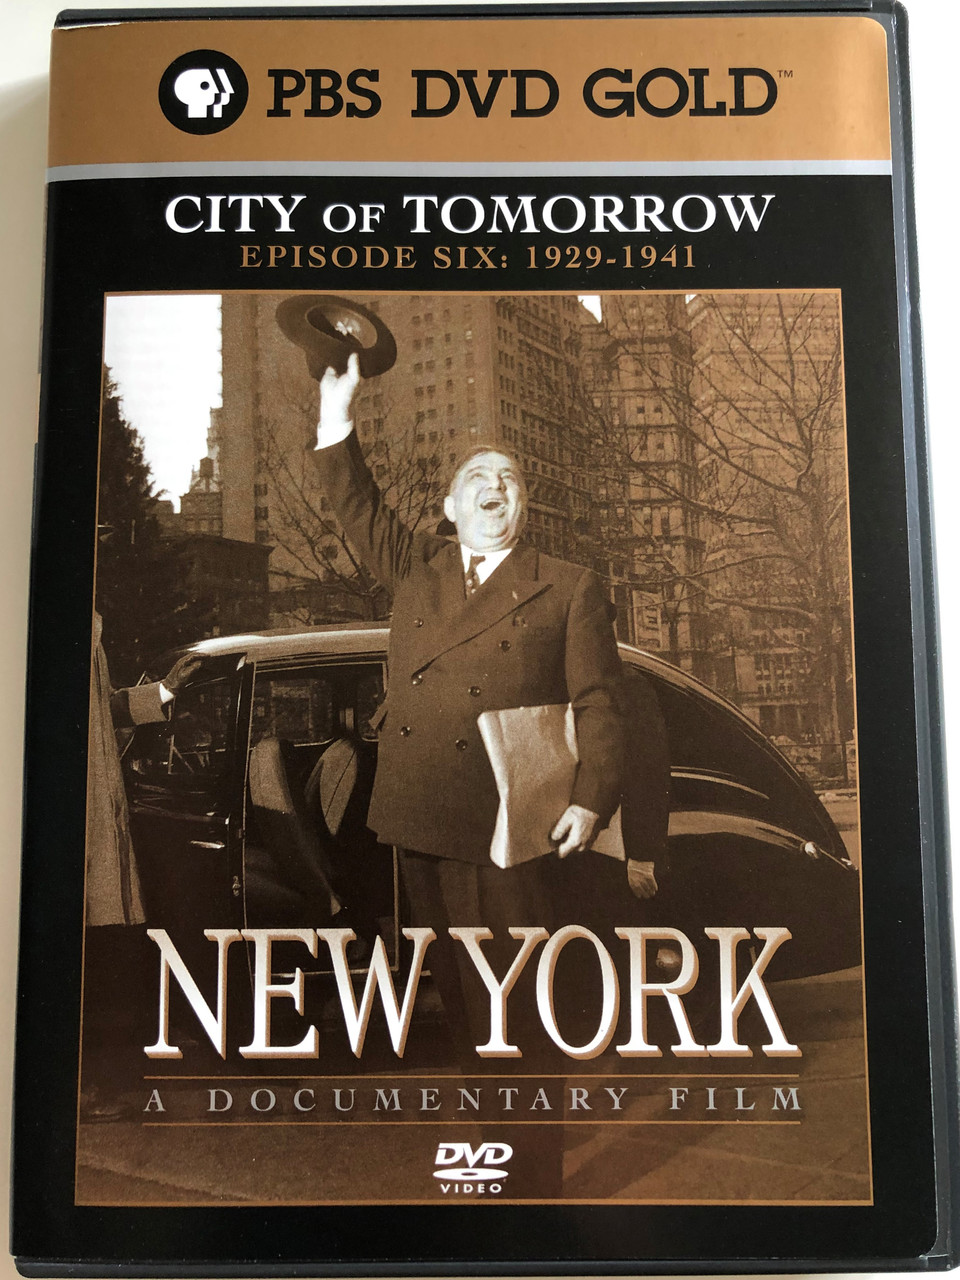 New York Episode 6 City Of Tomorrow 1929 To 1941 Dvd 2001 Directed By Ric Burns Produced By Lisa Ades Ric Burns And Steve Rivo Pbs Dvd Gold The History Of Nyc Bibleinmylanguage